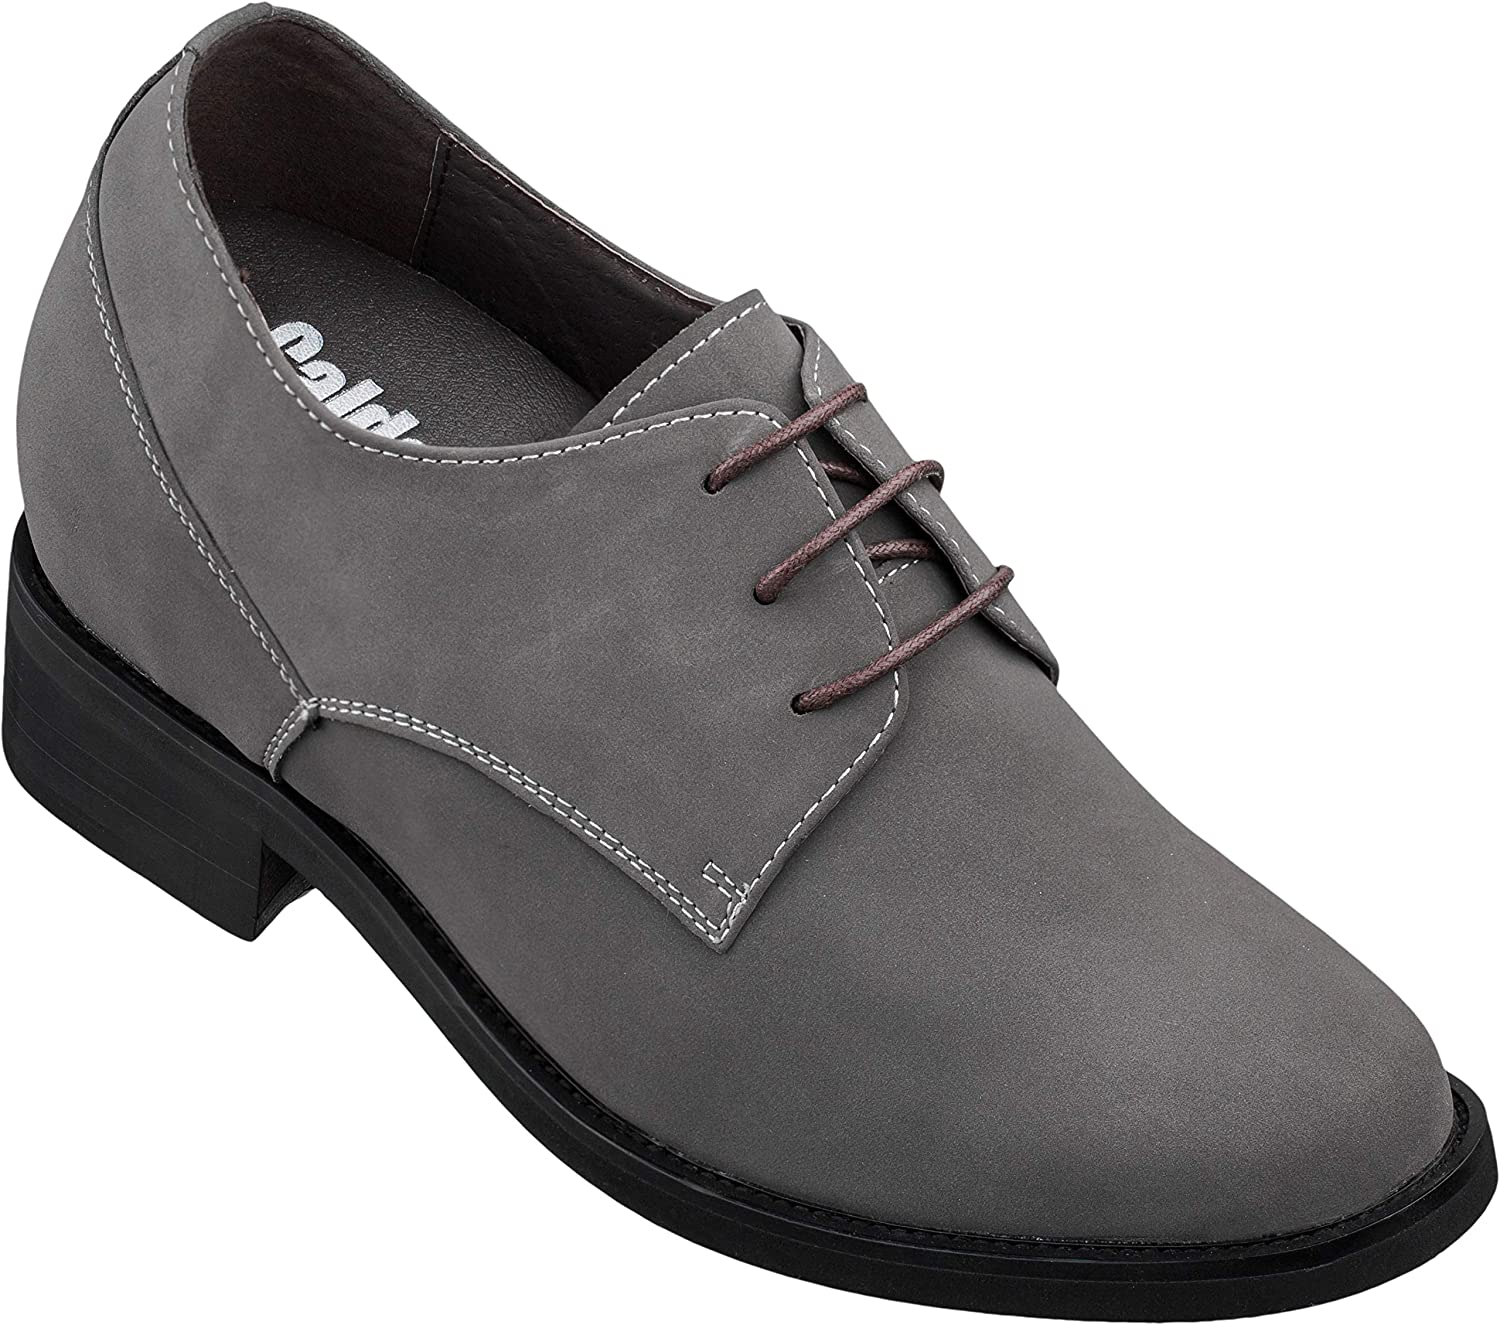 Calden Men's Invisible Height Increasing Elevator Shoes - Grey Suede Leather Lace-up Formal Oxfords - 4 Inches Taller - T5102